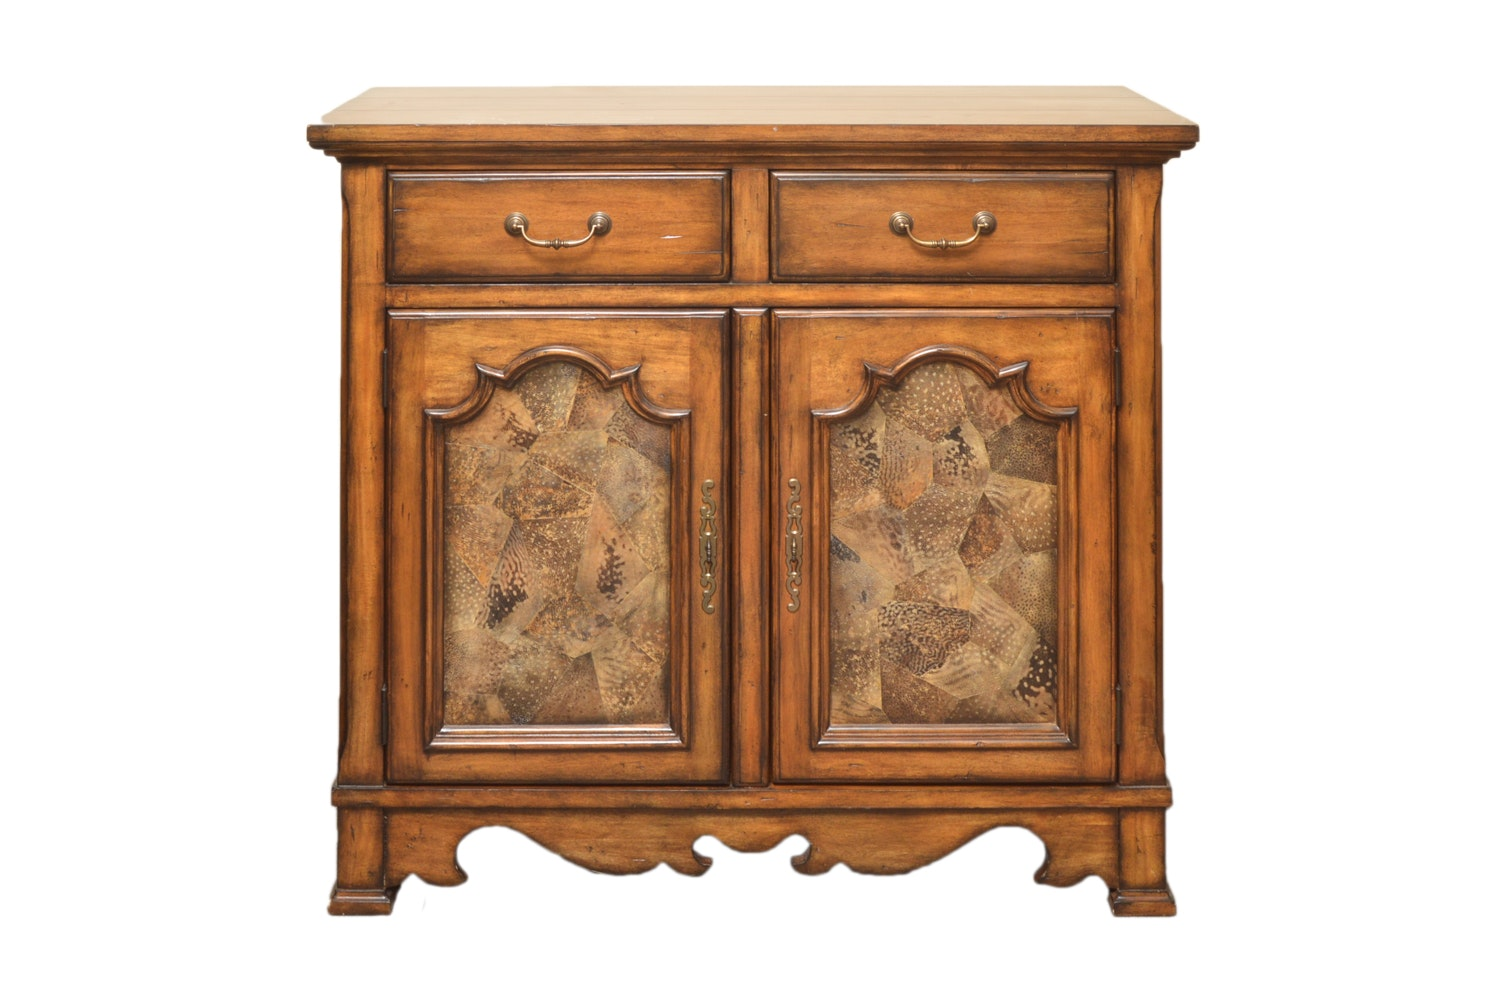 Wooden Cabinet with Faux Deer Hide Doors